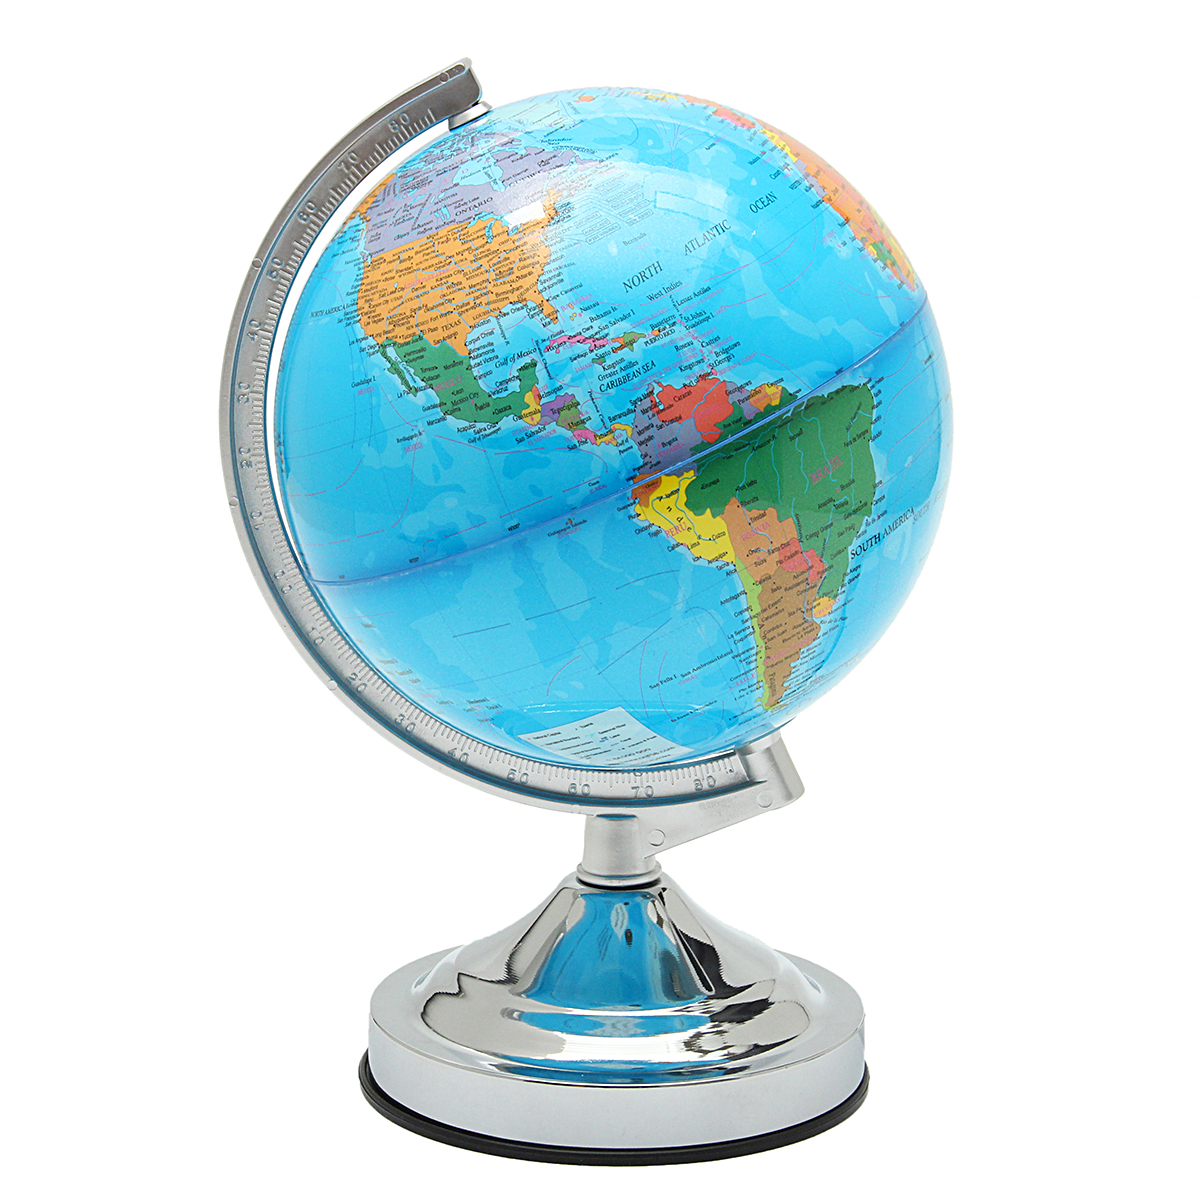 20cm light globe map world geographic politic planet earth ebay mobile 20cm light globe map world geographic politic planet earth gumiabroncs Image collections